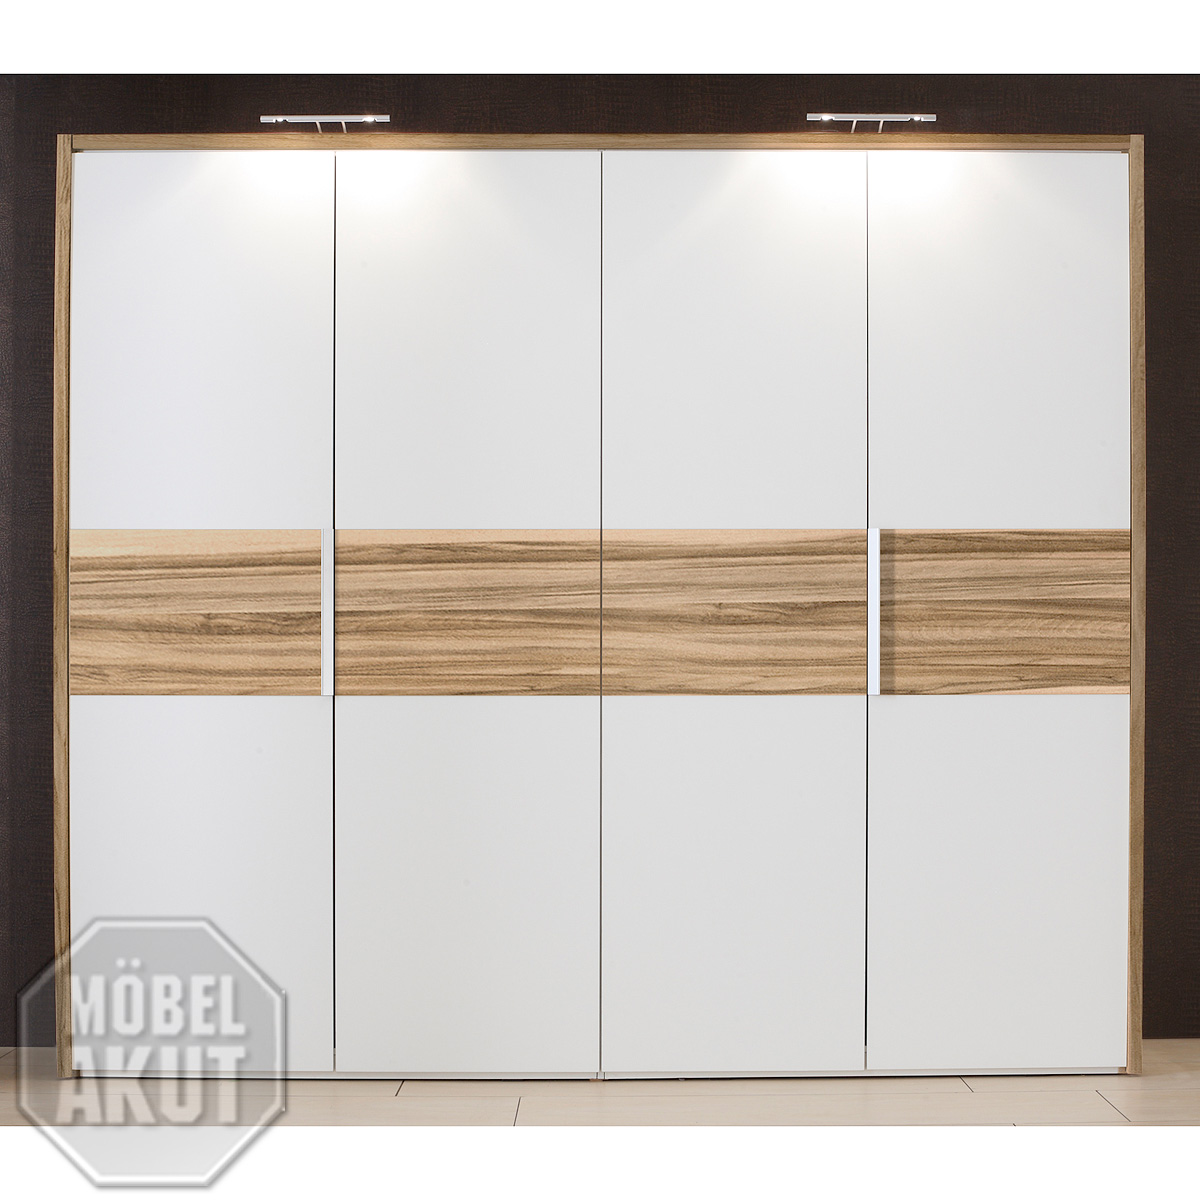 kleiderschrank eco schrank wei baltimore walnuss b 256 cm neu ebay. Black Bedroom Furniture Sets. Home Design Ideas